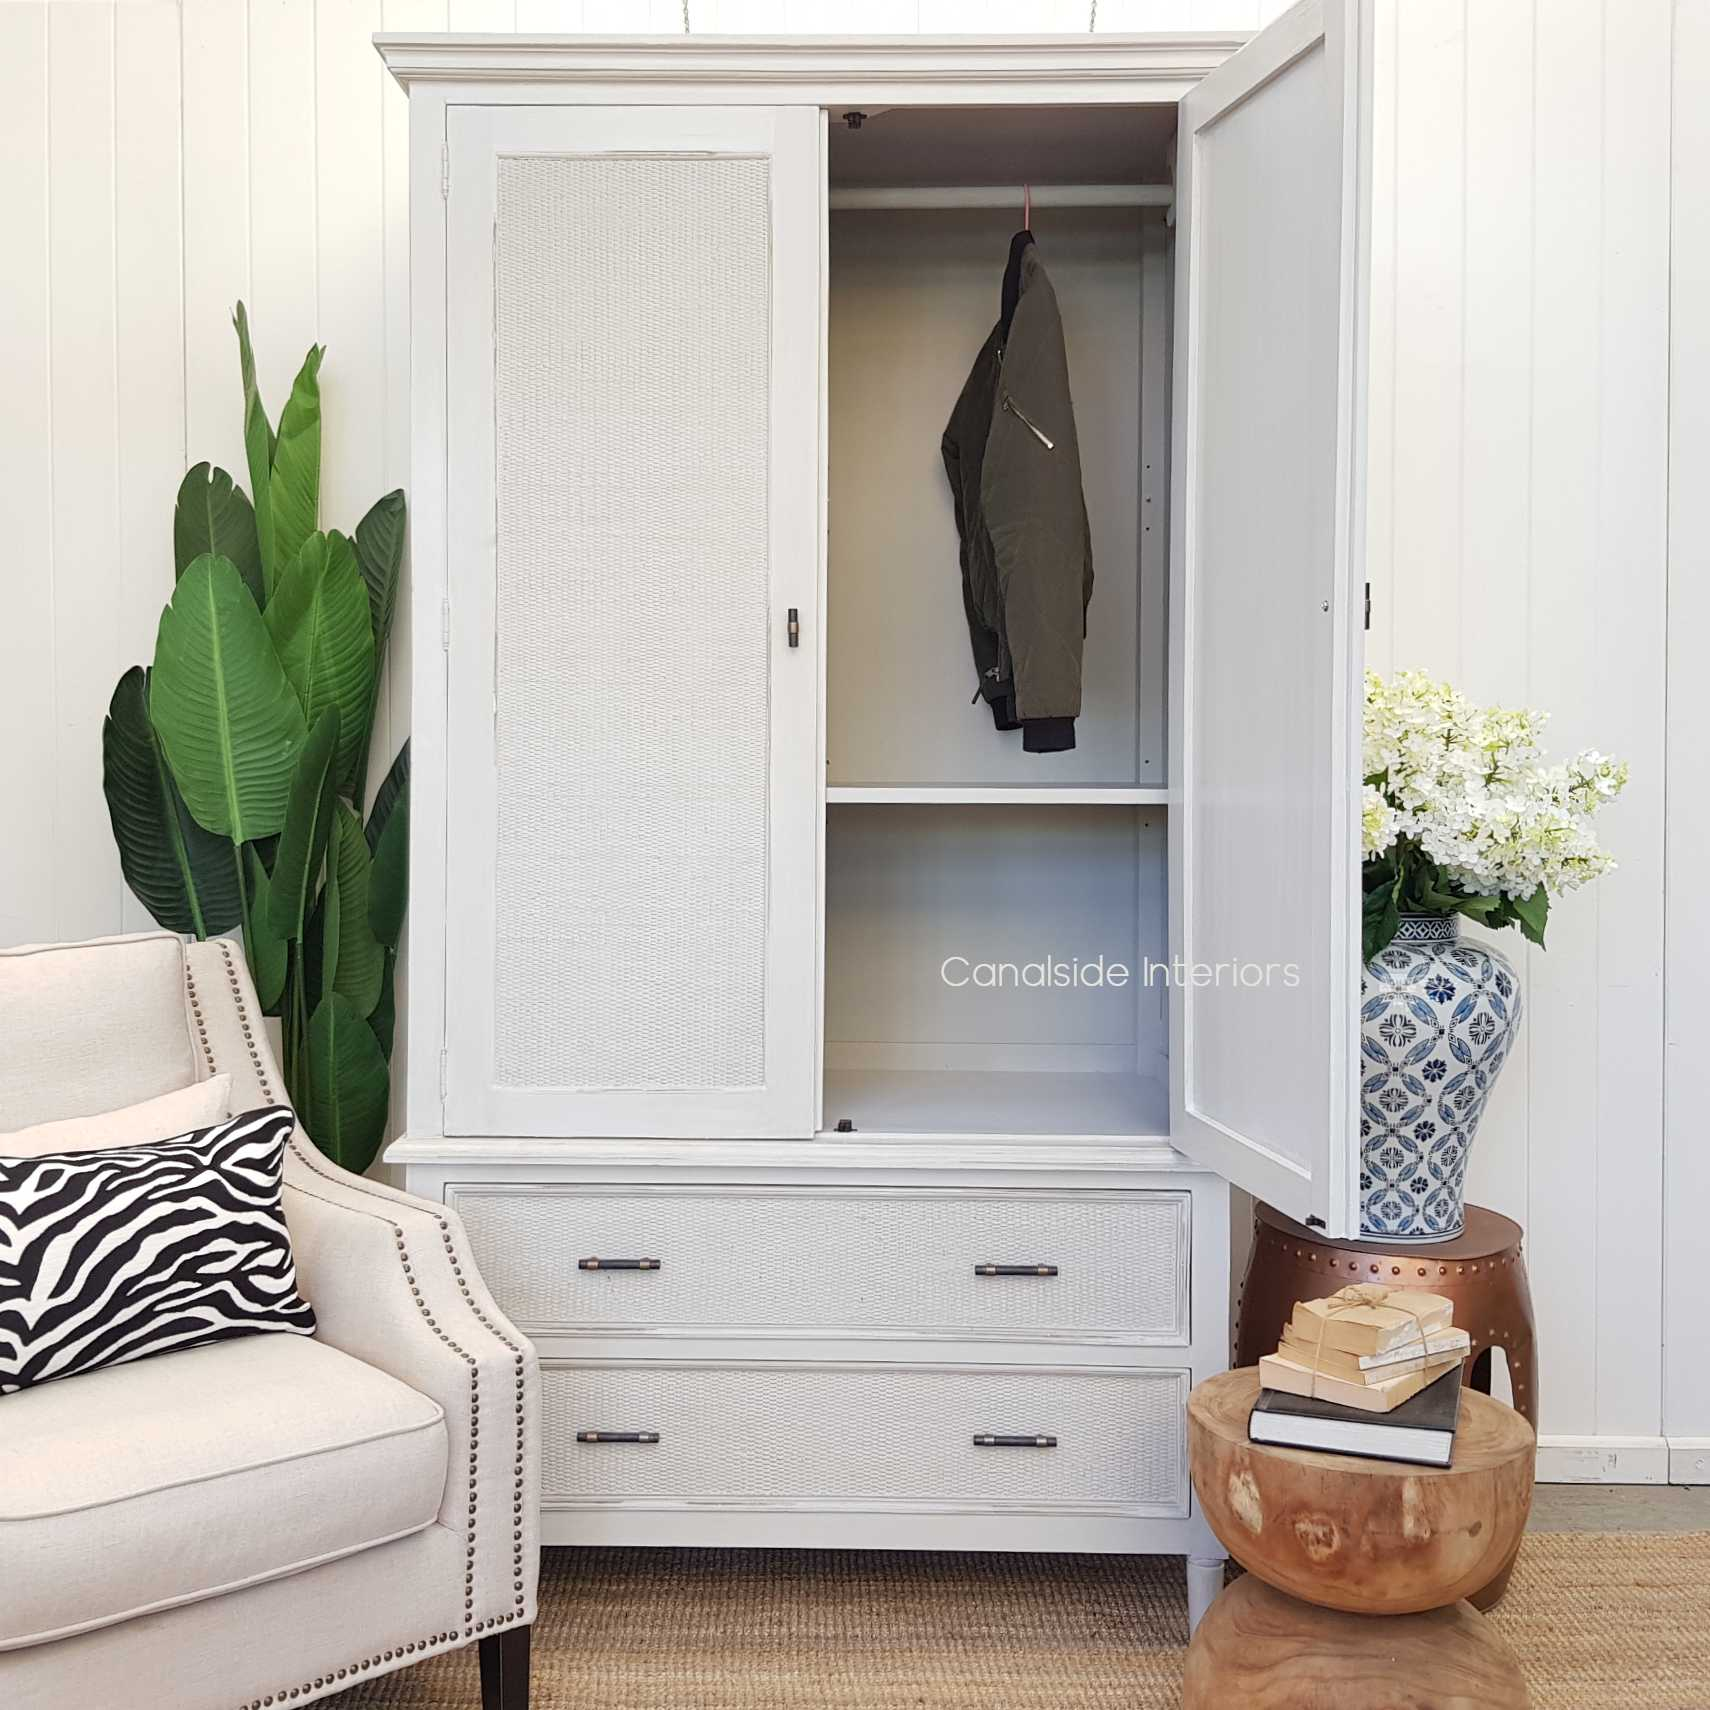 Brielle Rattan Wardrobe Cupboard  HAMPTONS Style, PLANTATION Style, LIVING Room, LIVING Cupboards & Bookcases, STORAGE, STORAGE Bookshelves & Cupboards, PLANTATION STYLE  Wardrobe Distressed White  BEDROOM, BEDROOM Wardrobes & Armoires,